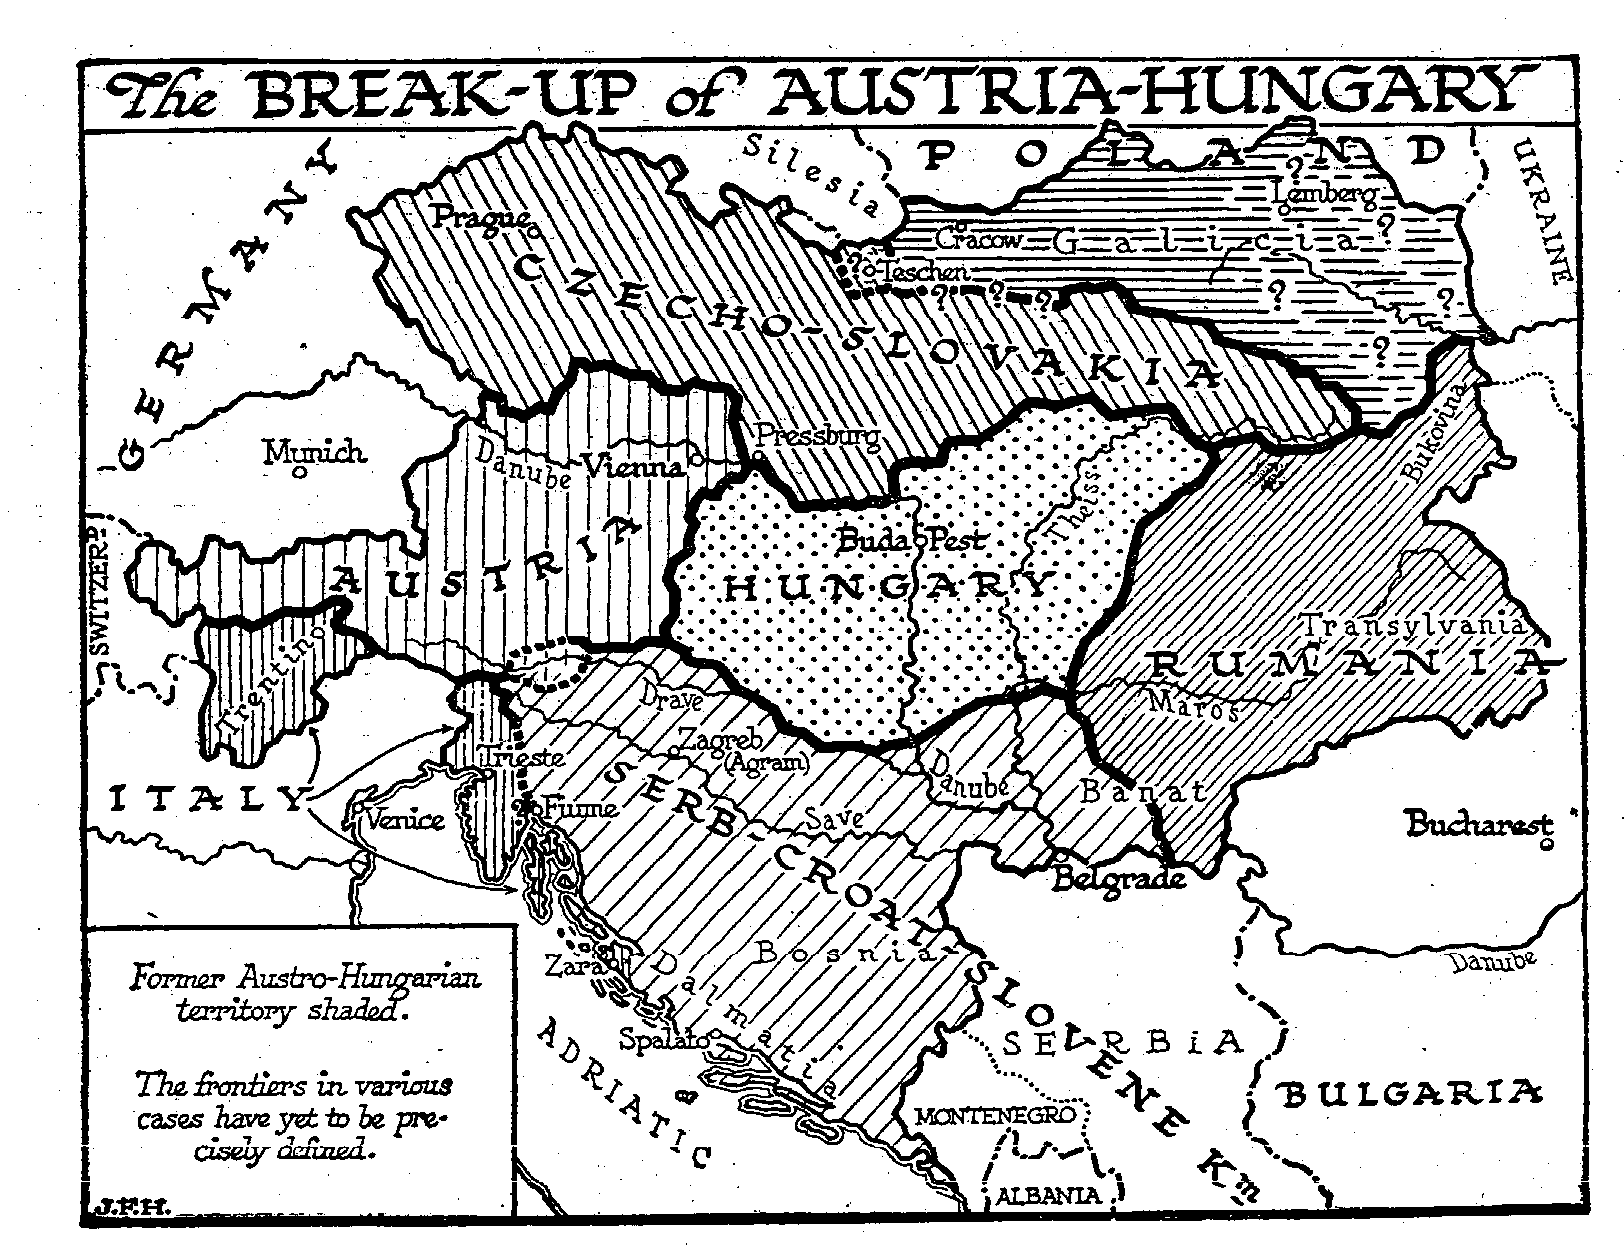 The End of Austria-Hungary